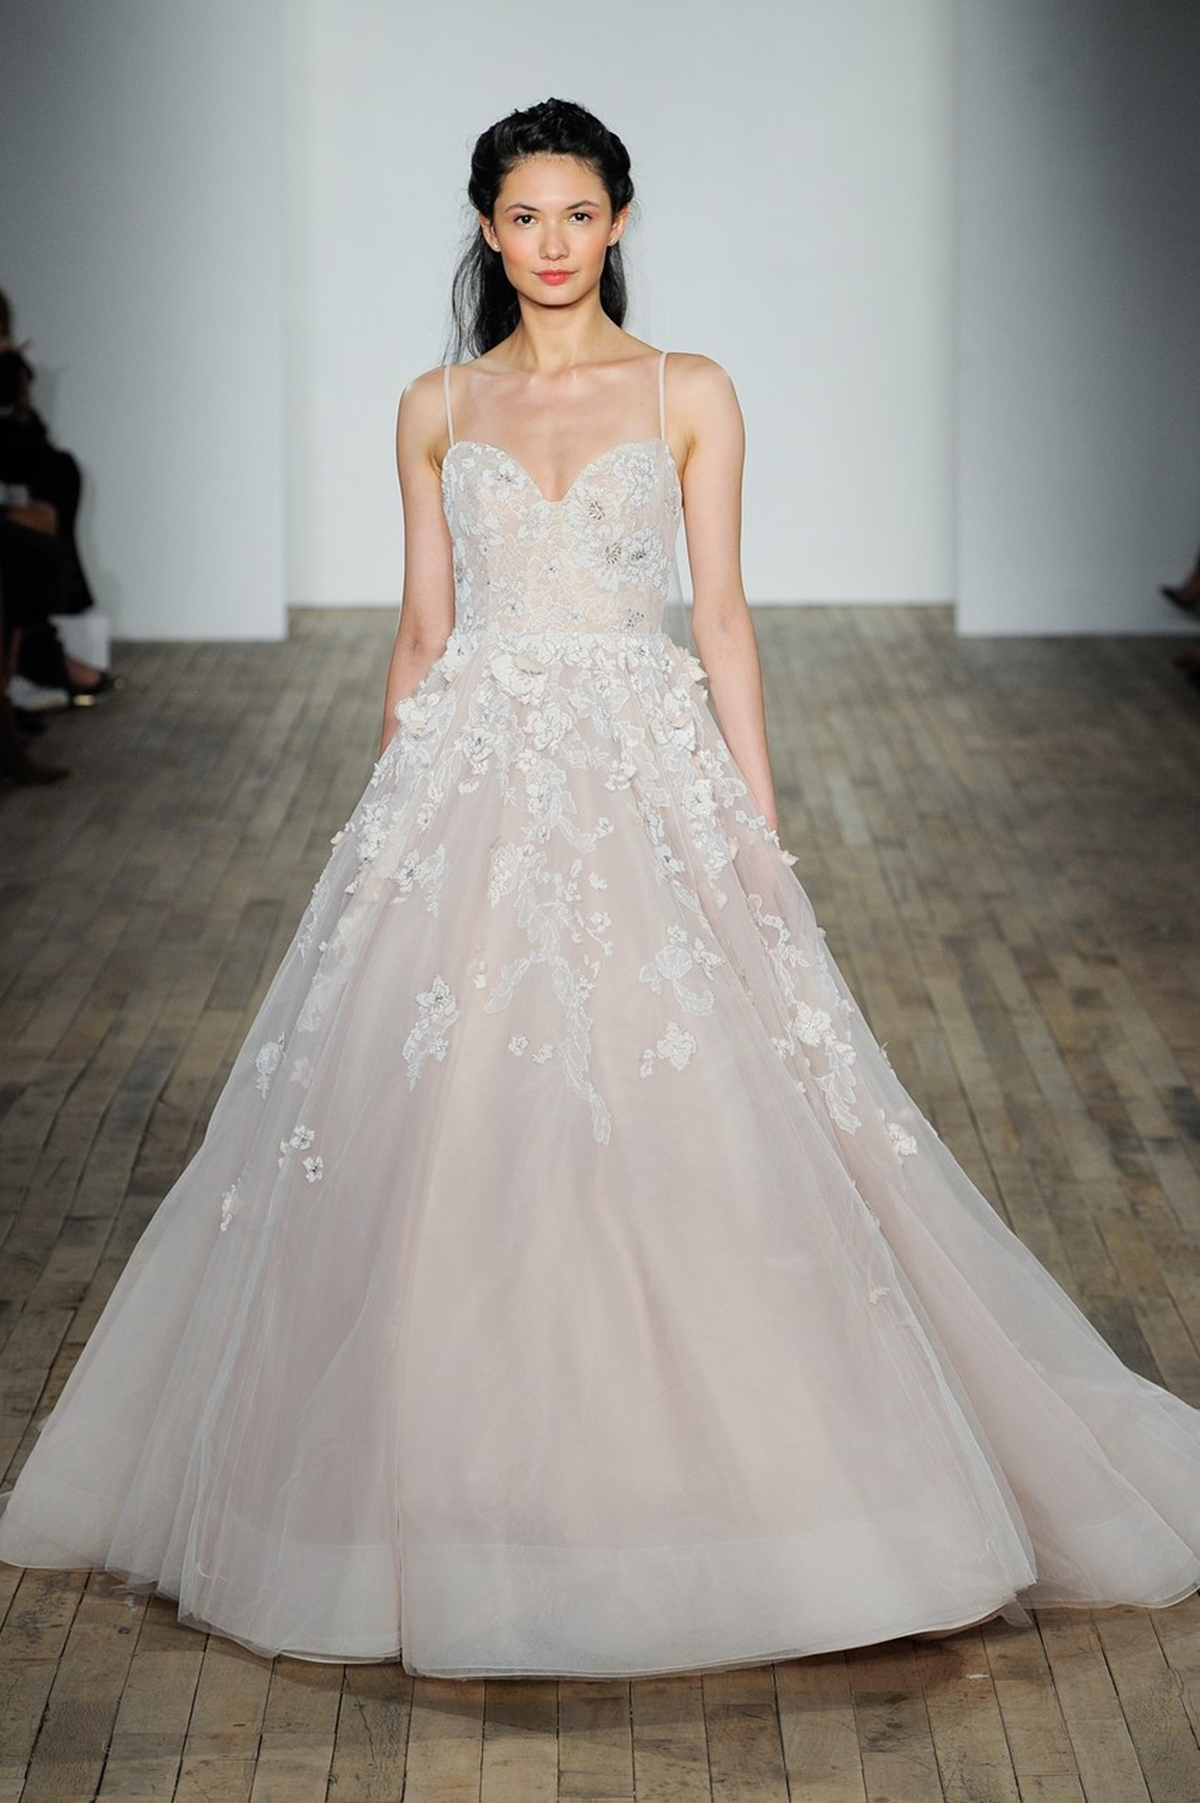 Our favorite blush pink wedding dresses the wedding tales blush pink ballgown wedding dress with spaghetti straps and embroideries hayley paige junglespirit Gallery